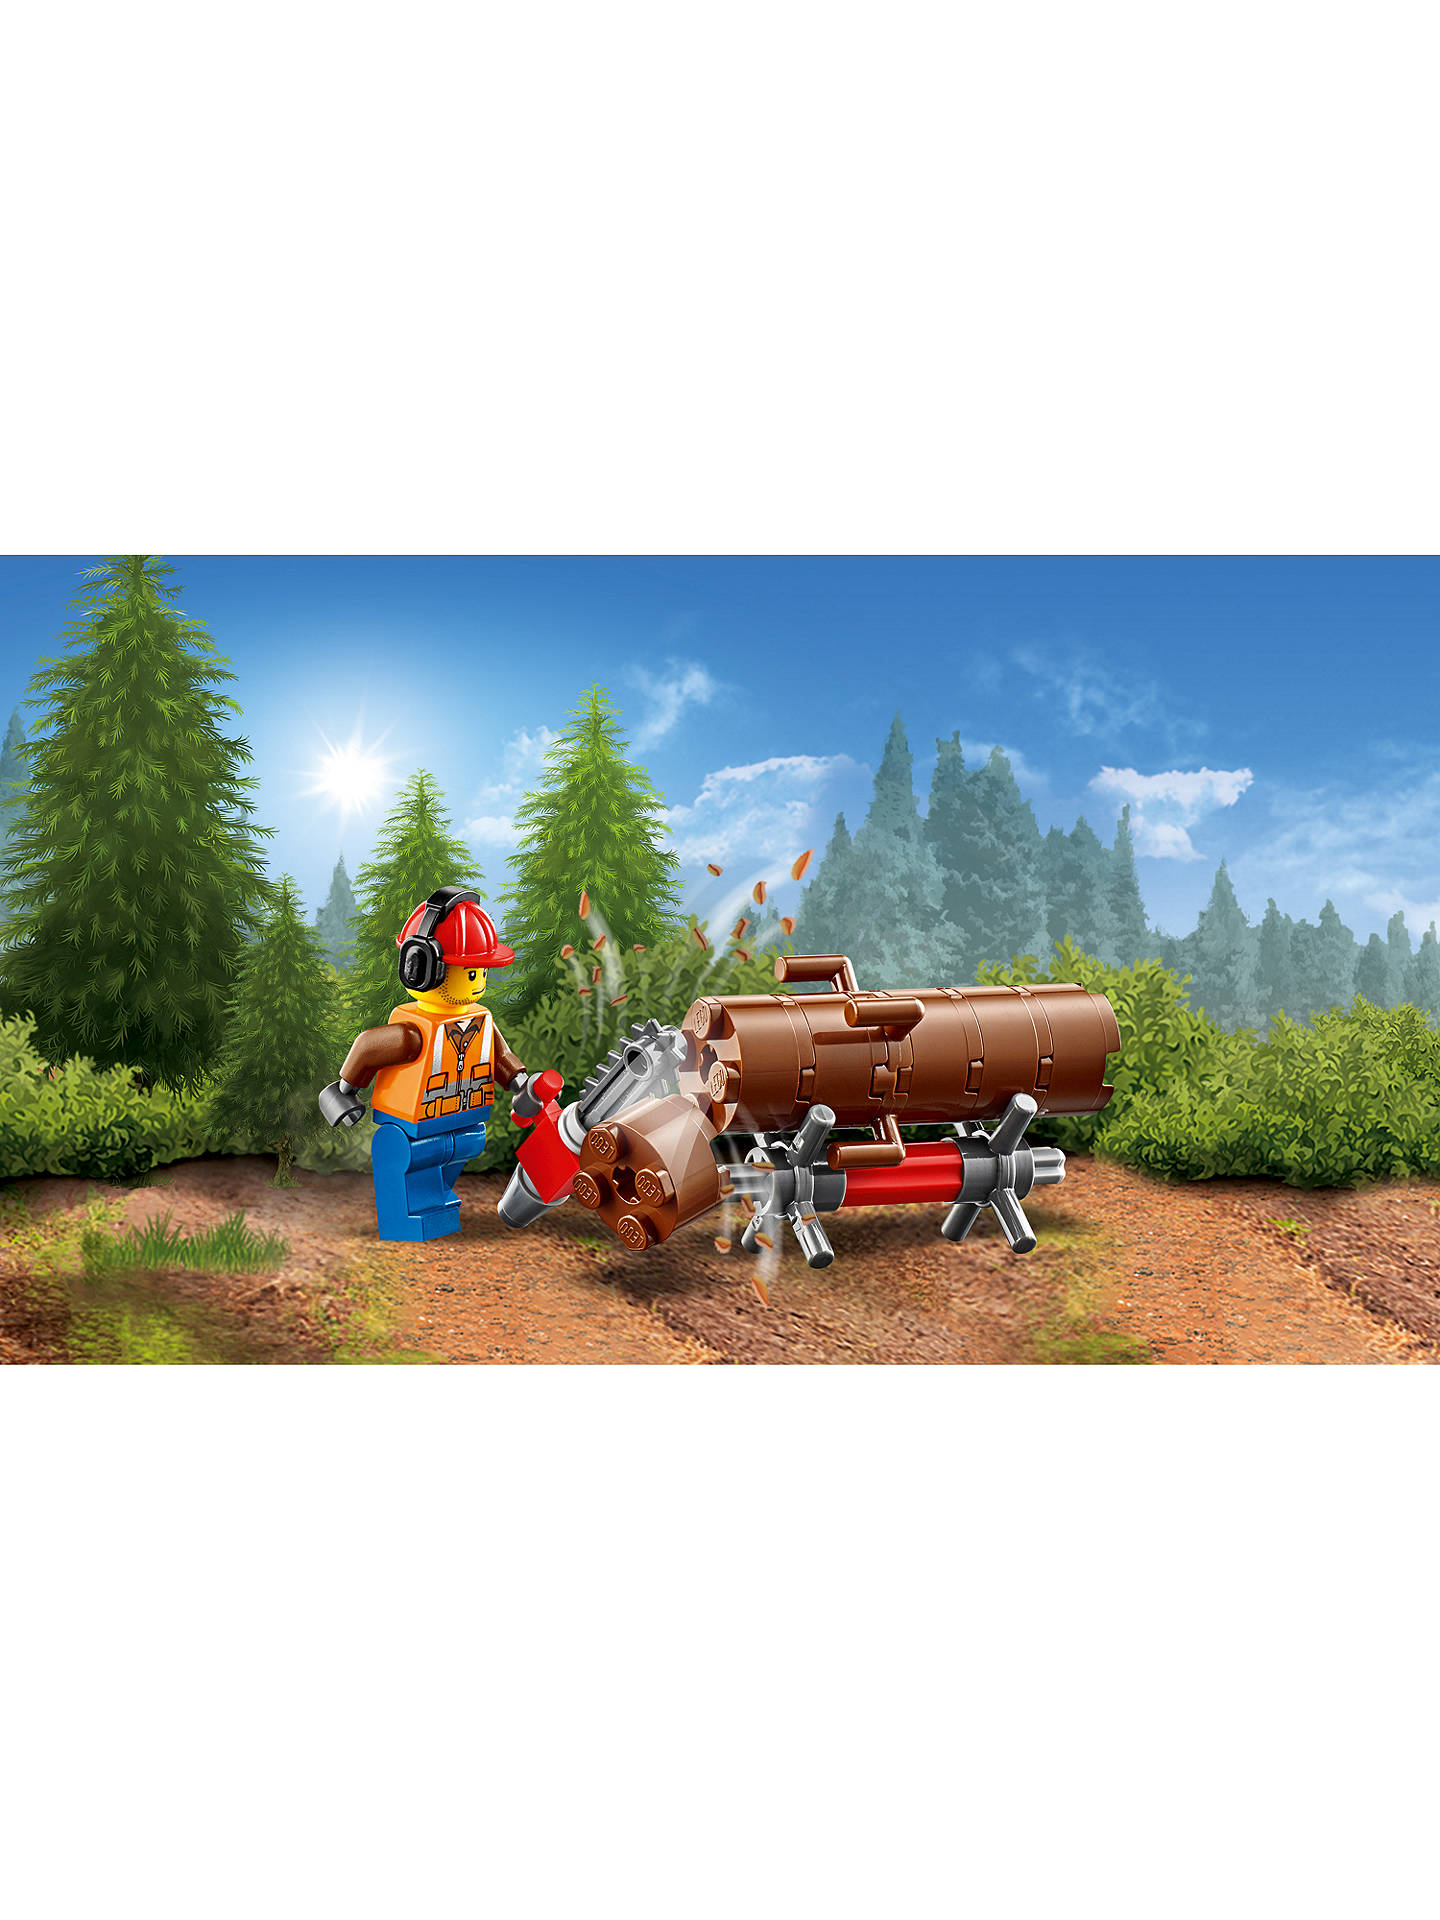 LEGO City Forest Tractor at John Lewis & Partners